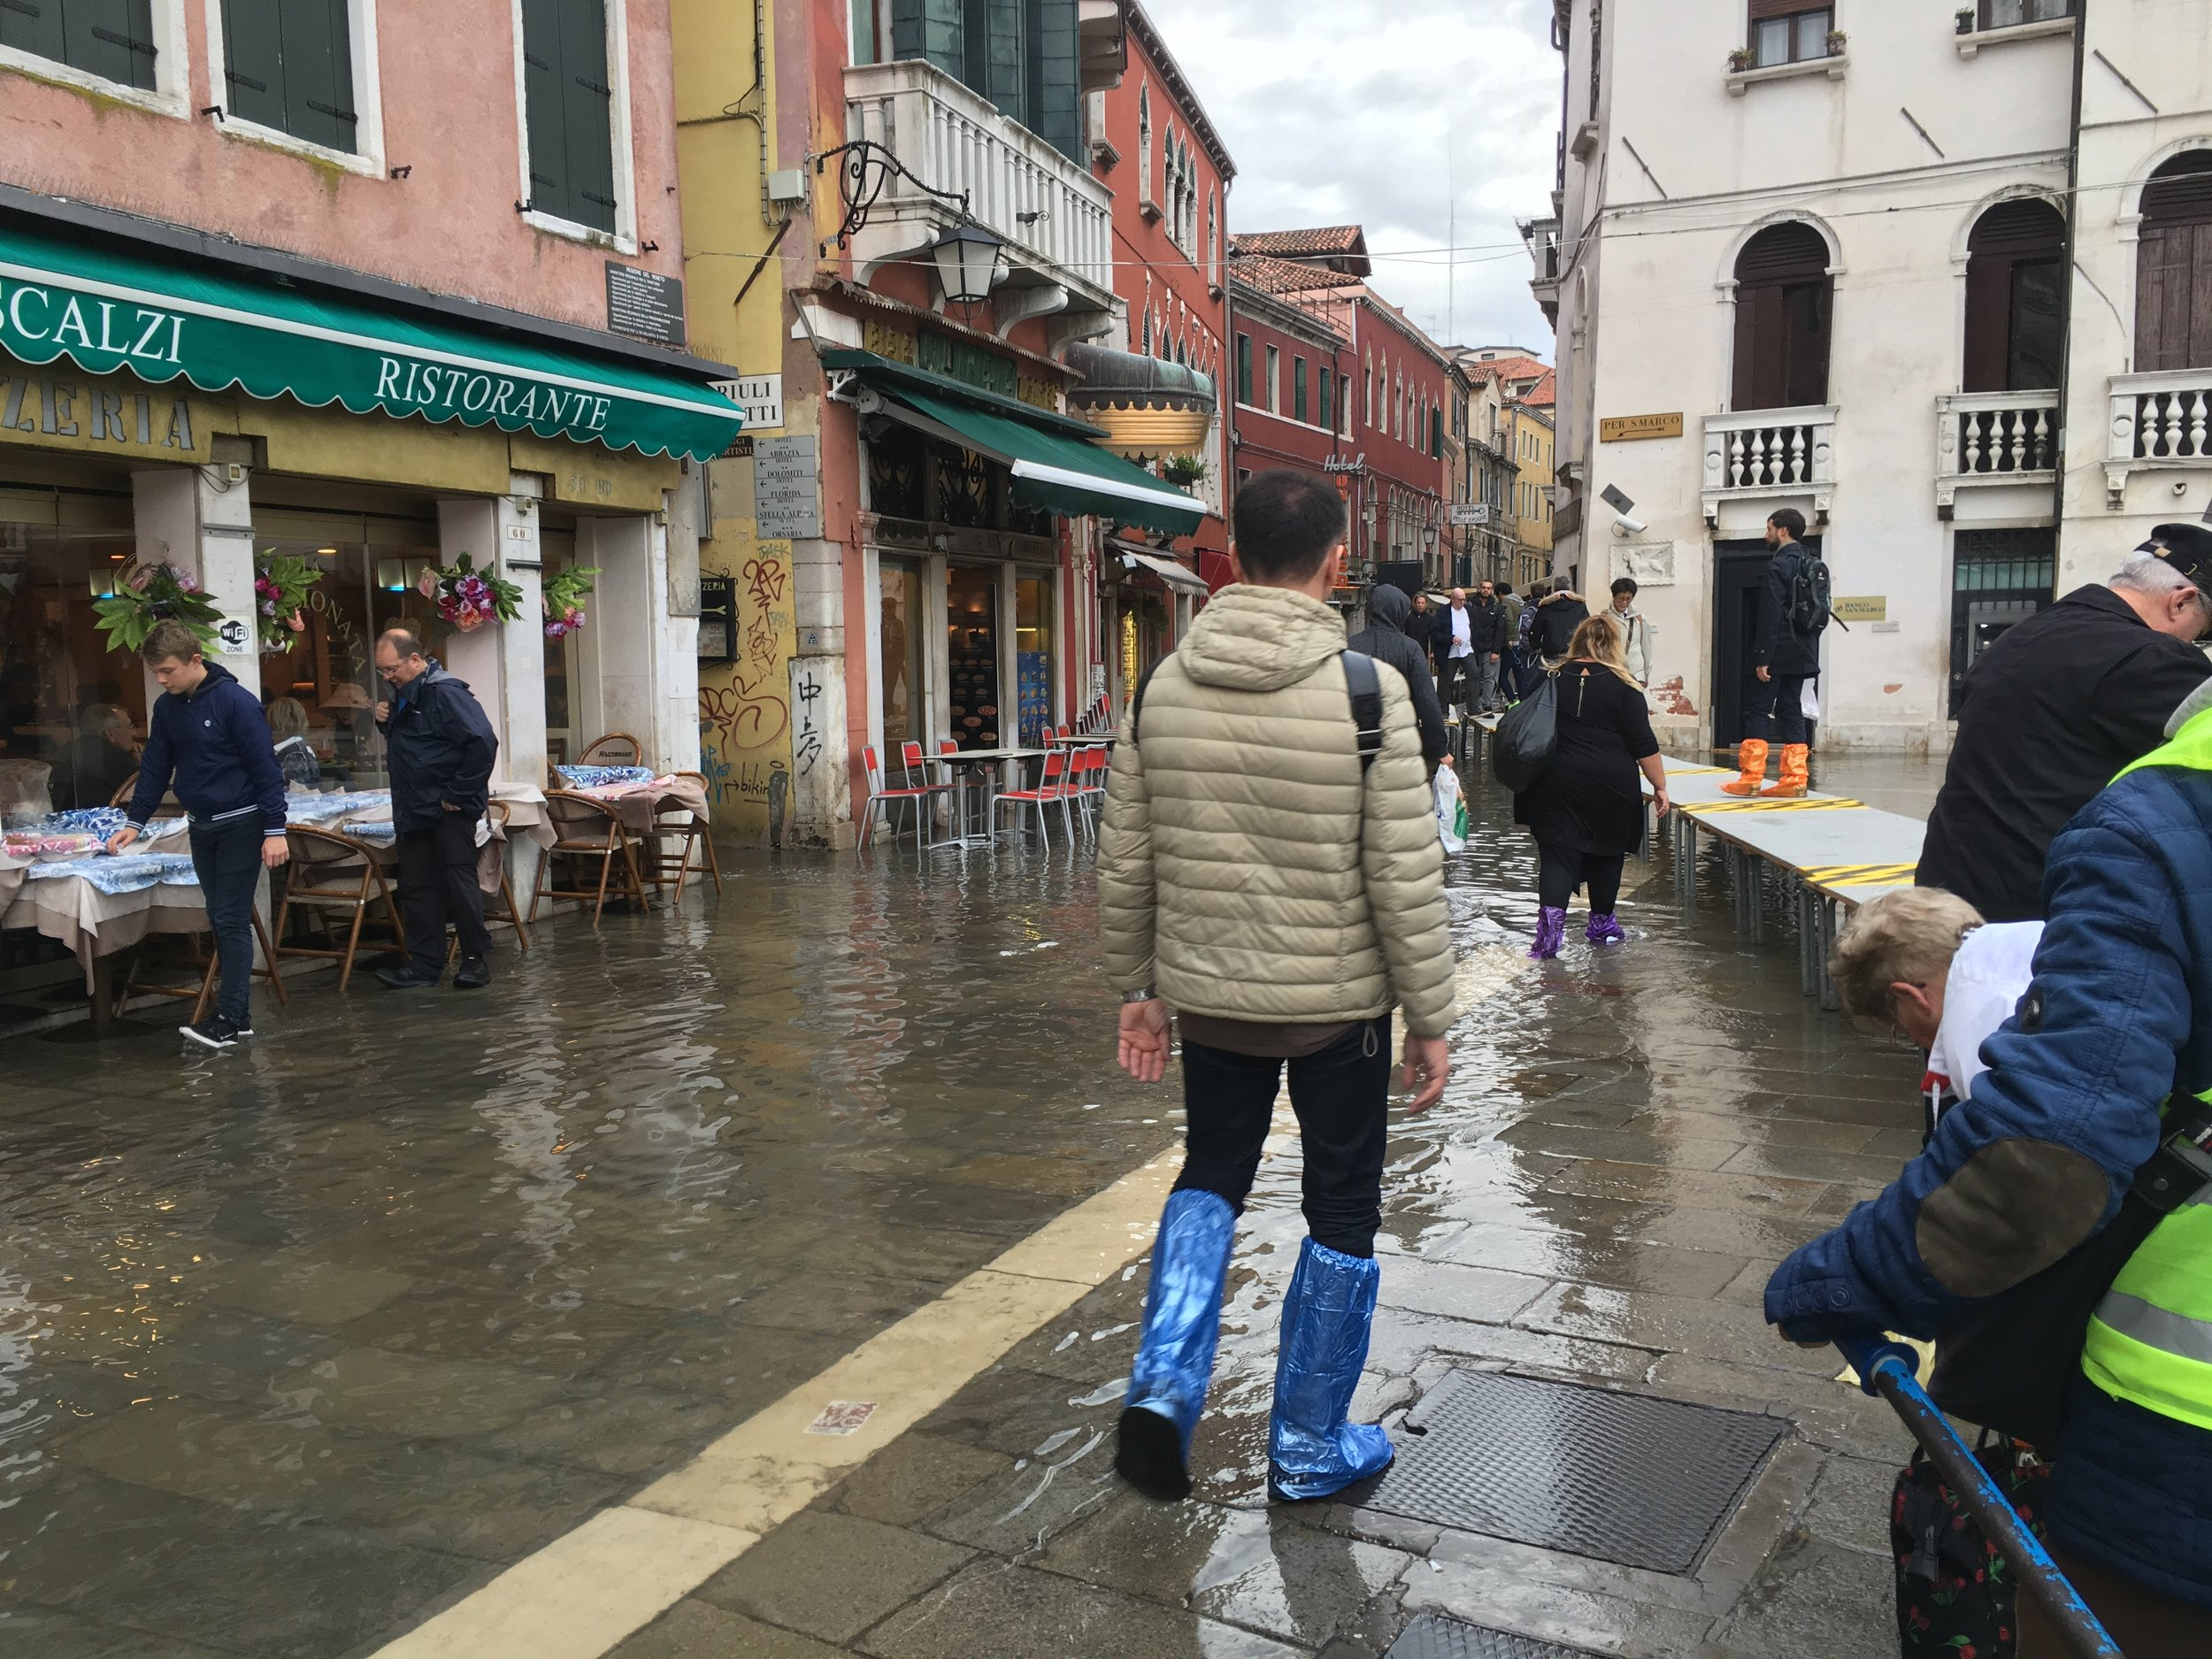 Visitors bought plastic boot covers to walk through the flooded streets of Venice.